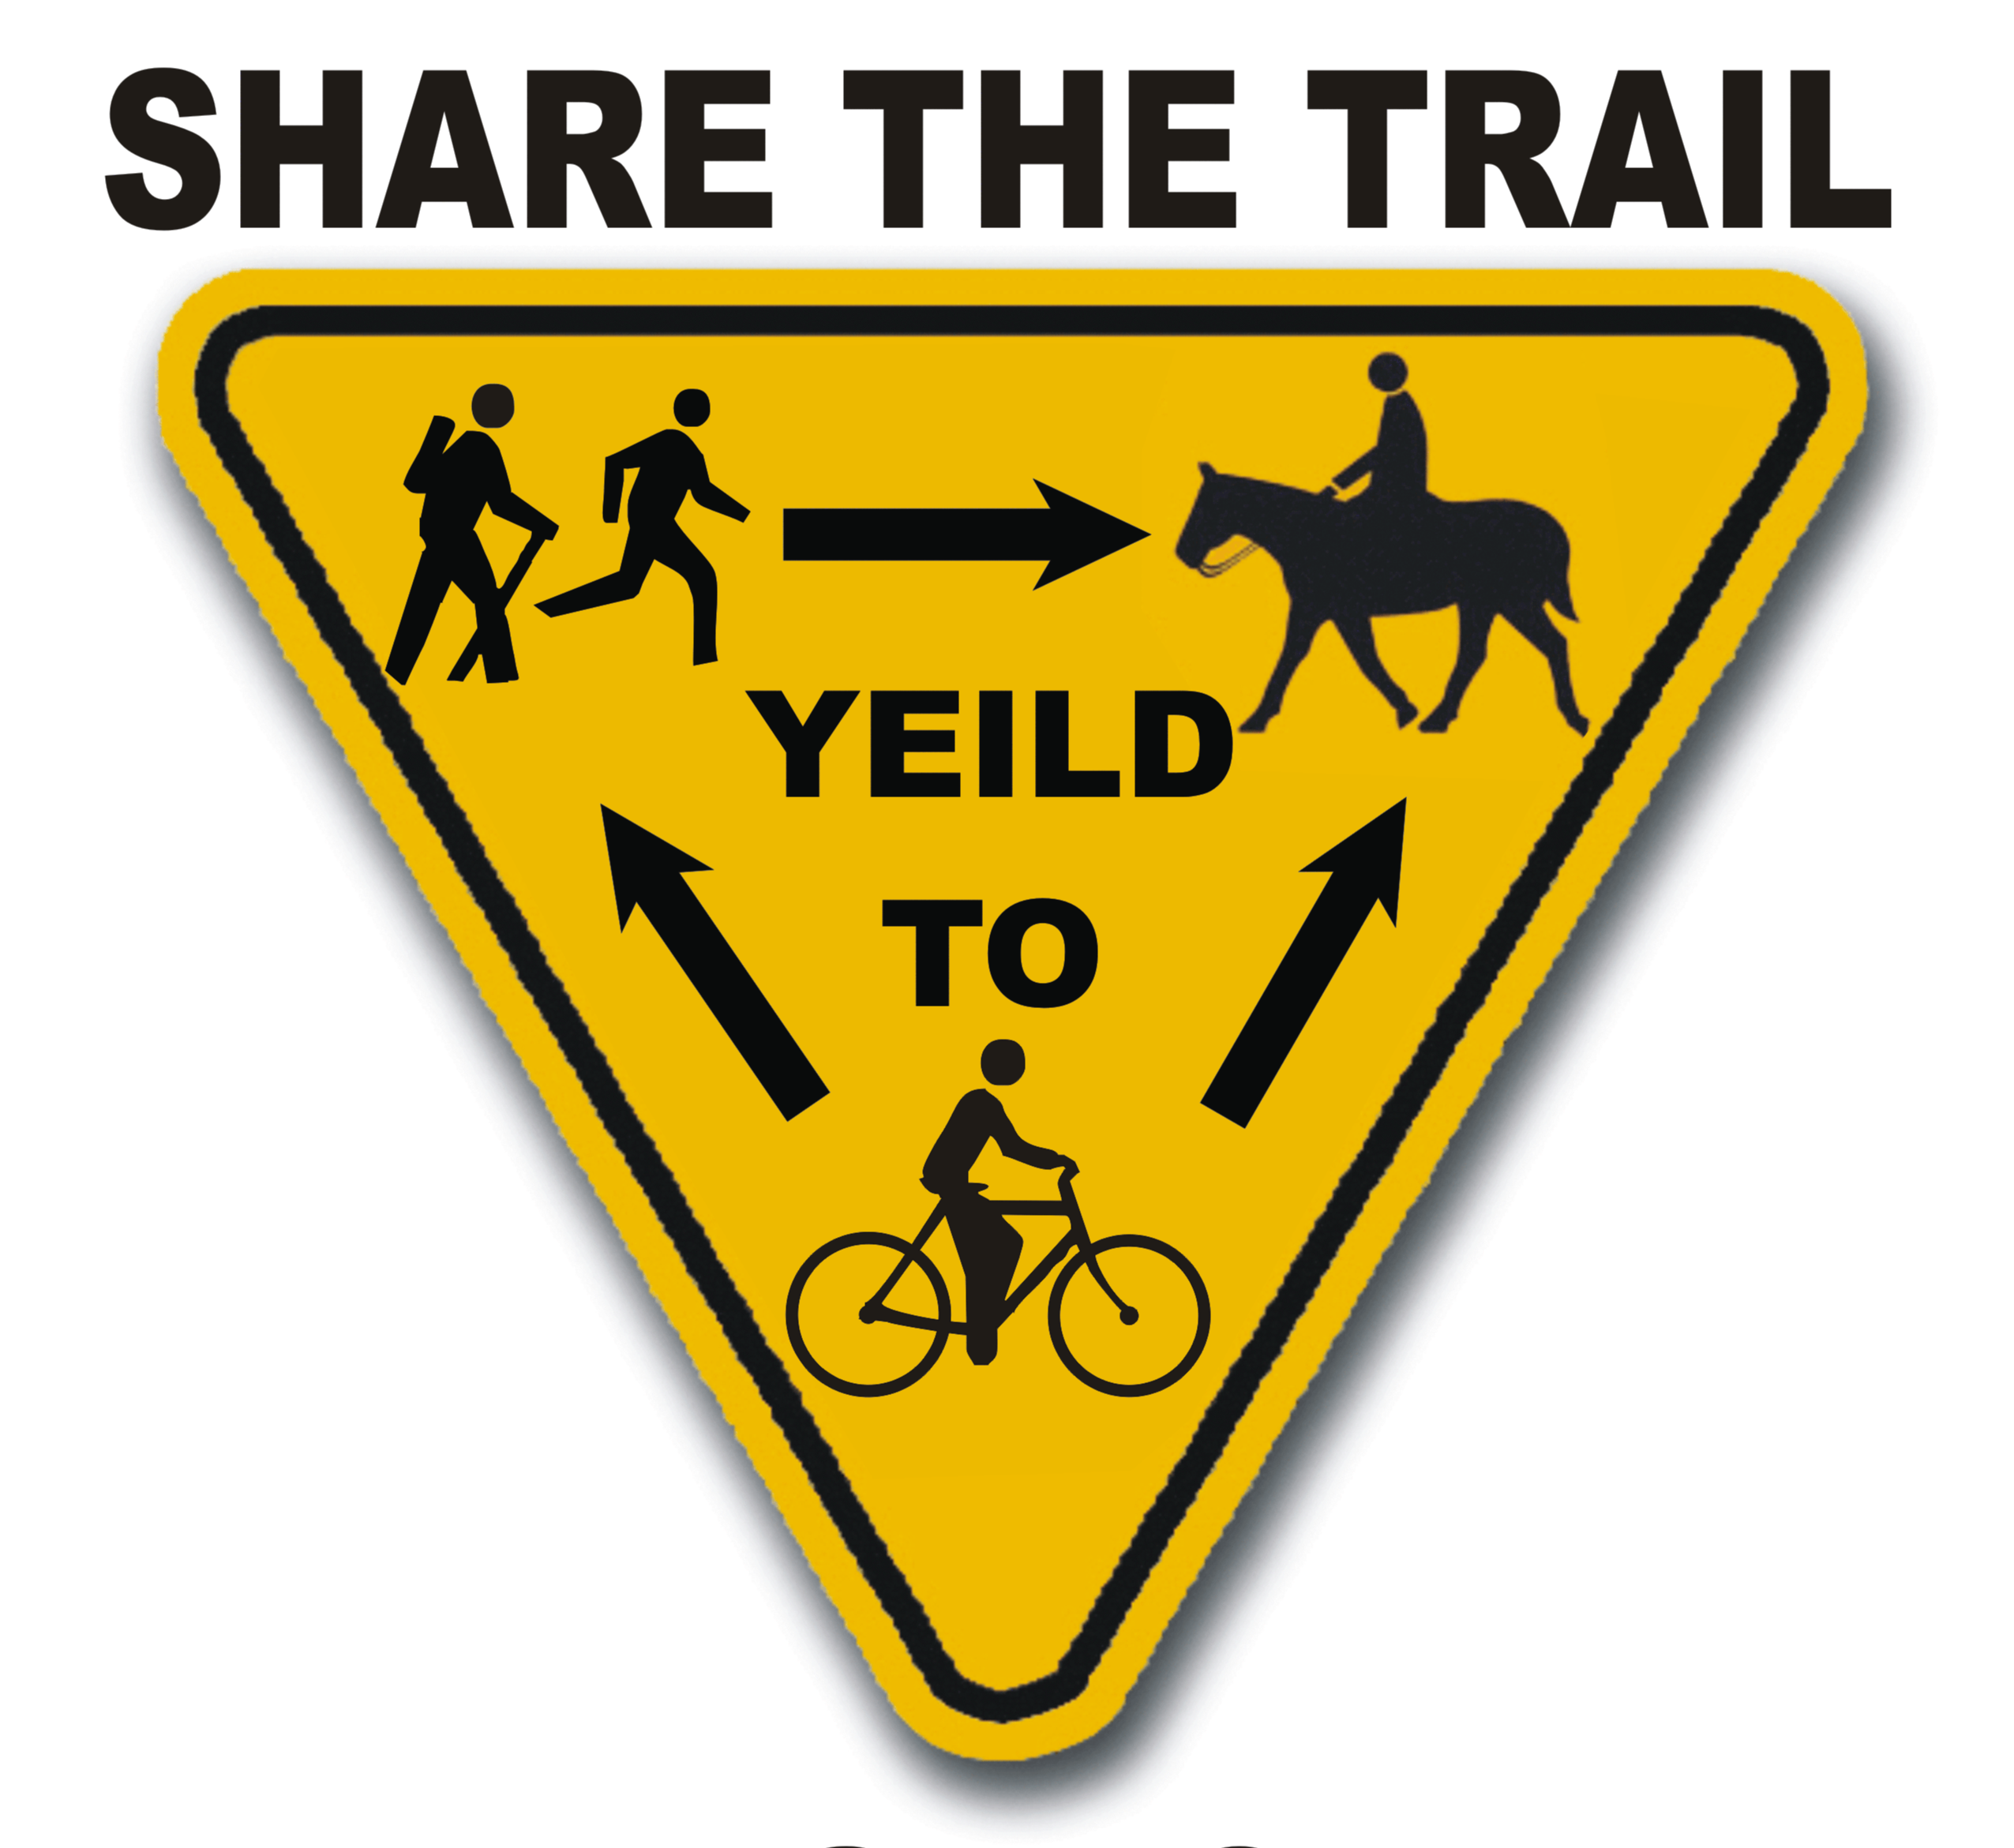 Share the Trail